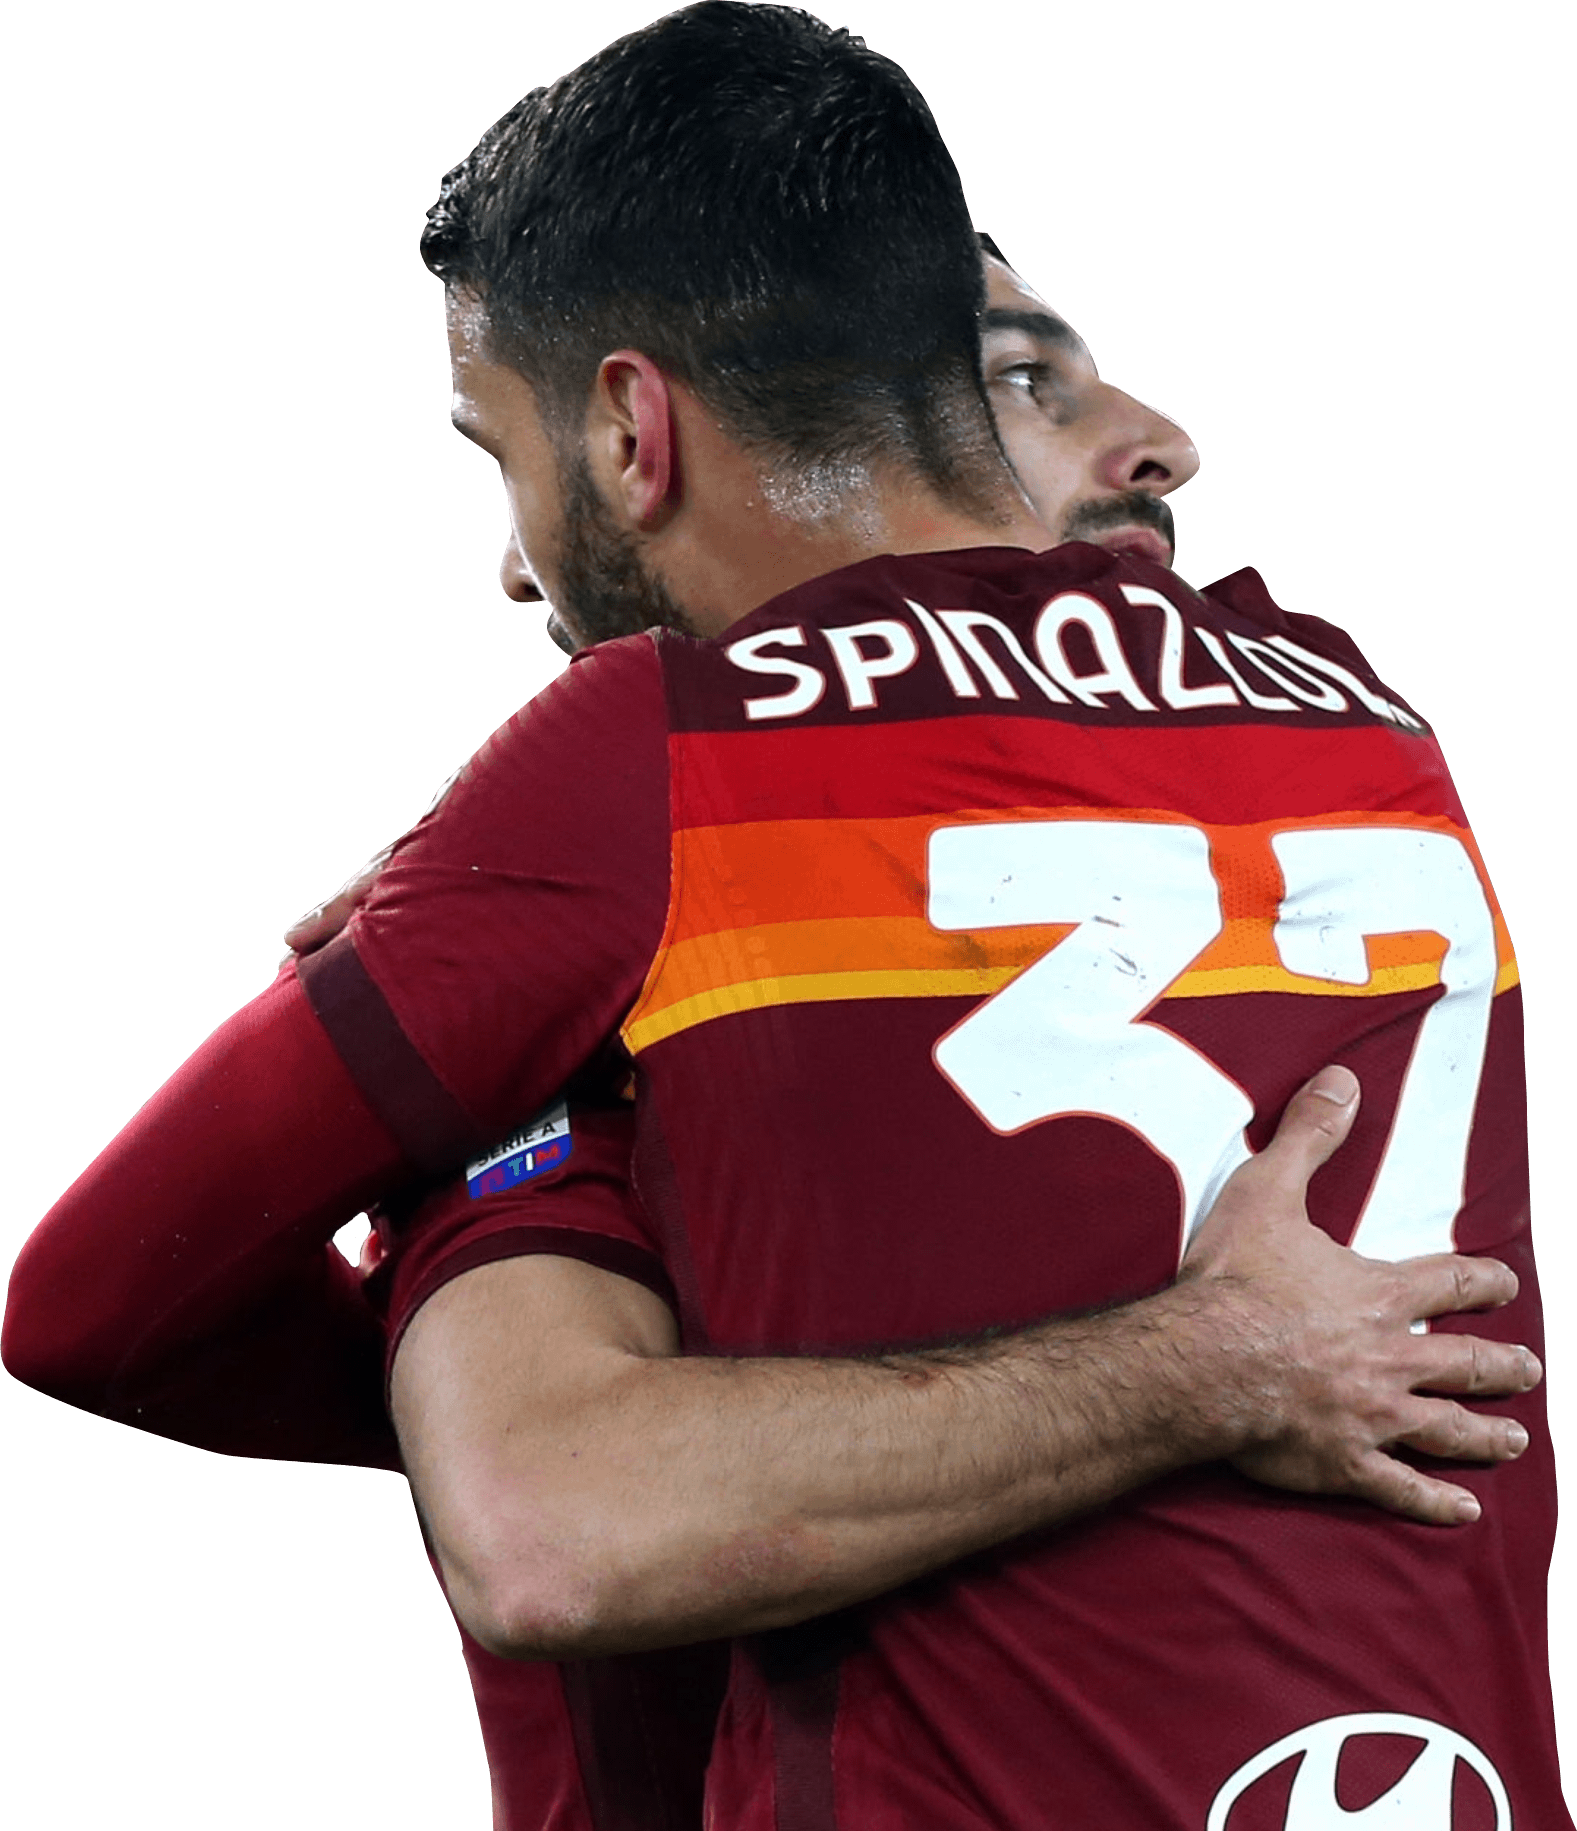 The Best 30 Spinazzola Png - Warui Wallpaper